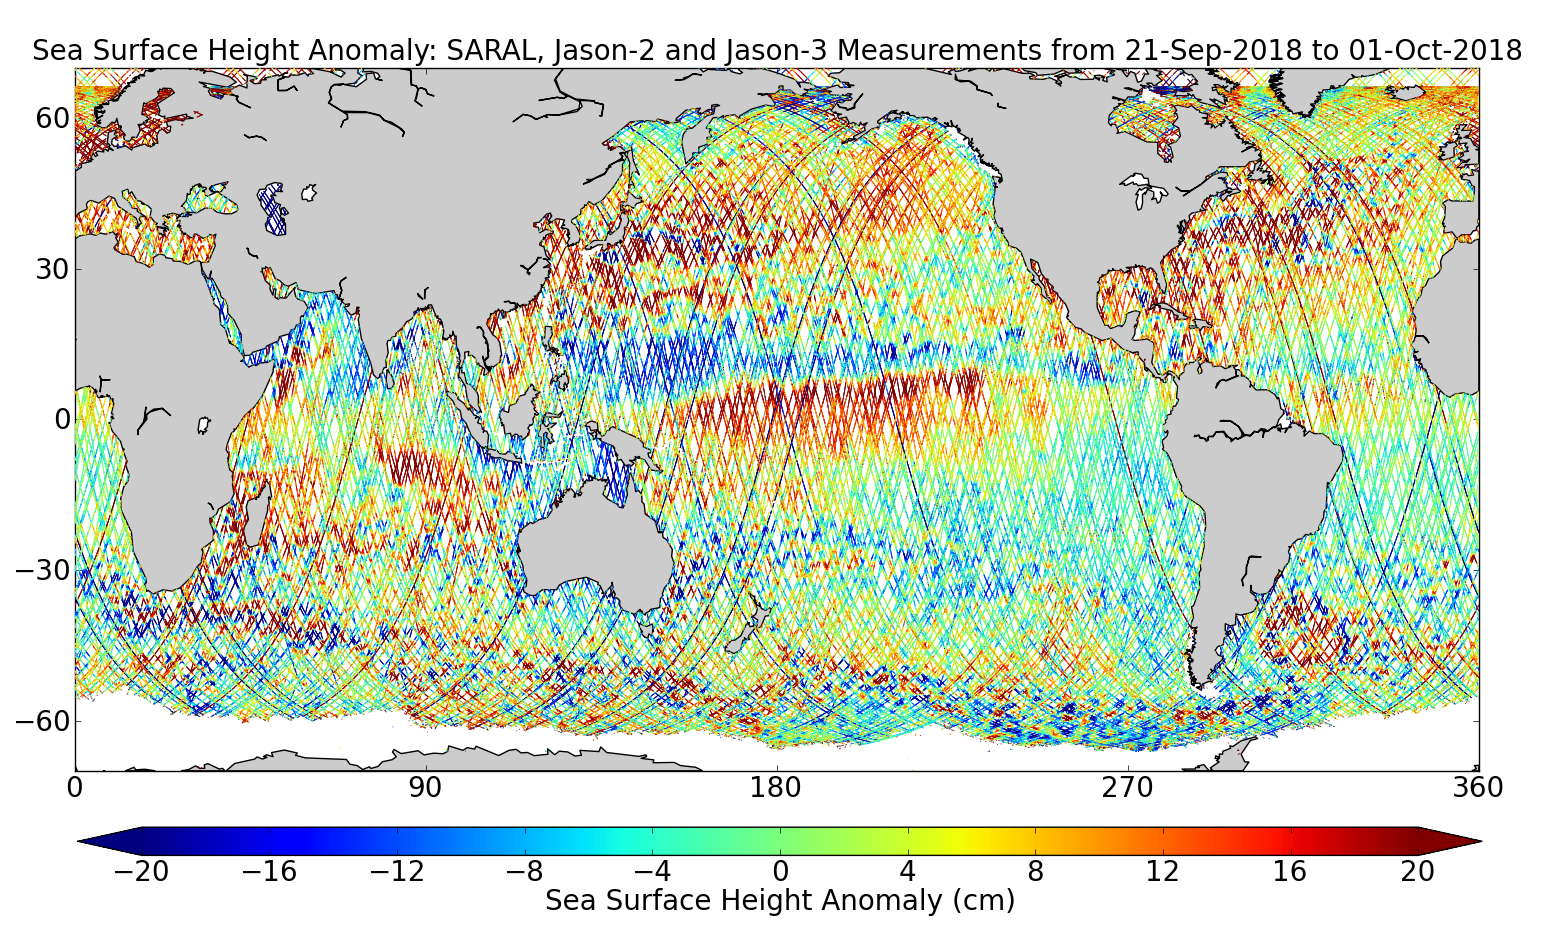 Sea Surface Height Anomaly: SARAL, Jason-2 and Jason-3 Measurements from 21-Sep-2018 to 01-Oct-2018